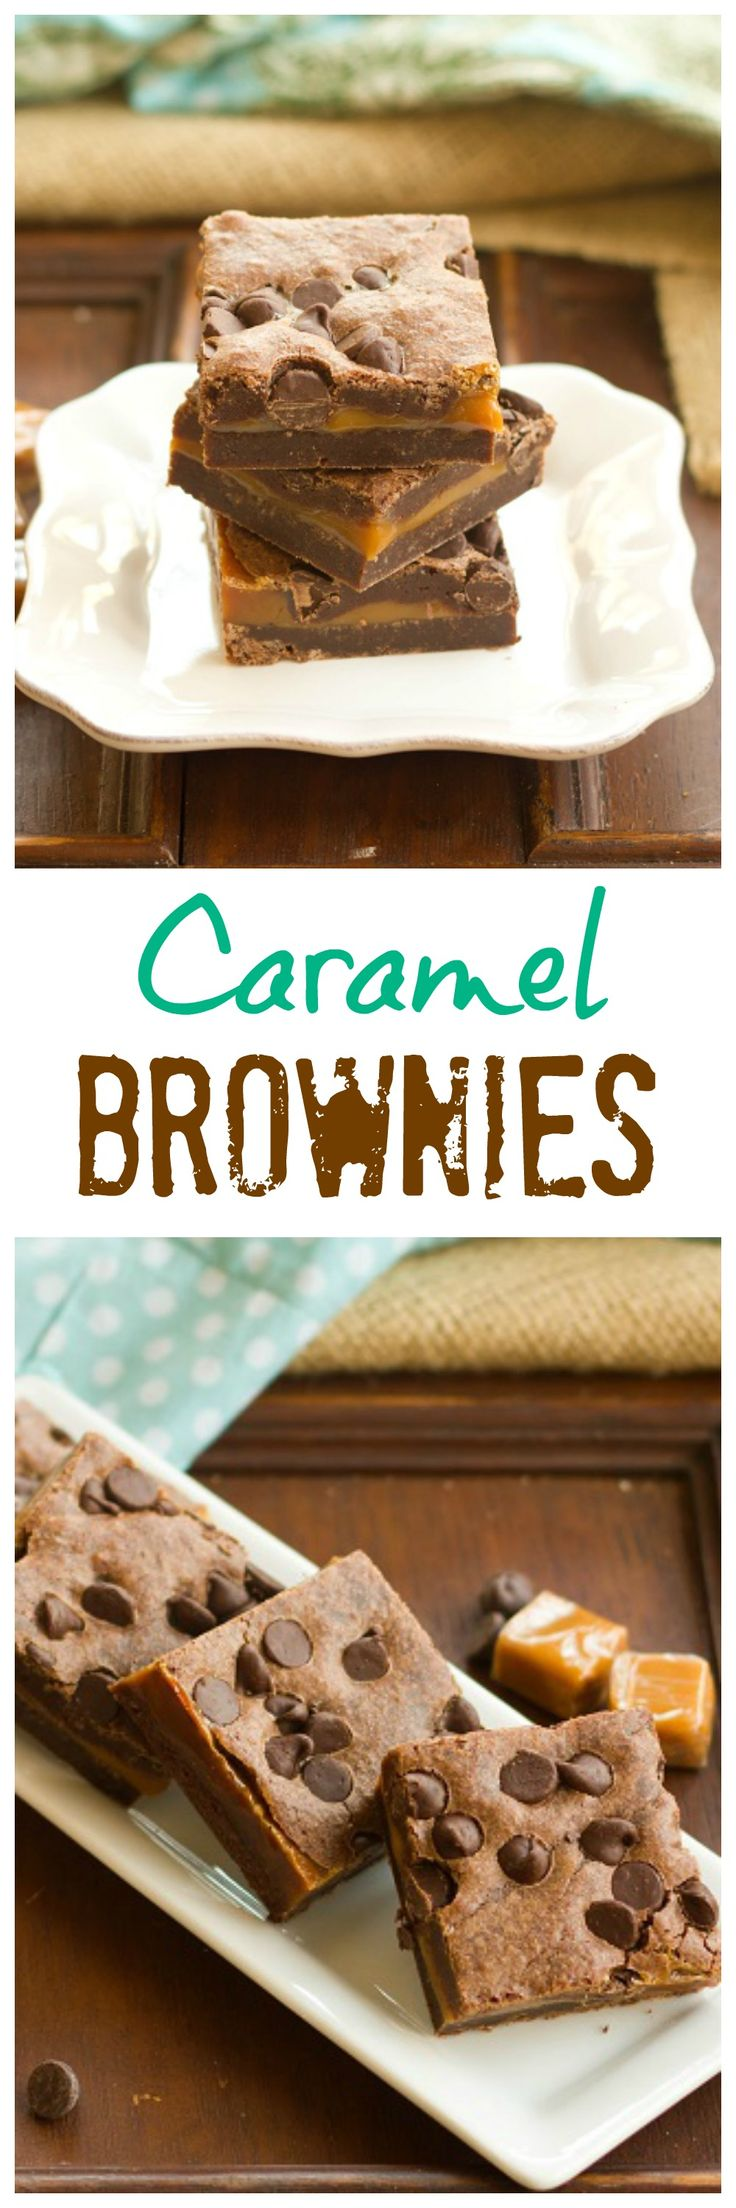 Caramel Brownies | A decadent treat for you chocolate-caramel lovers! @lizzydo